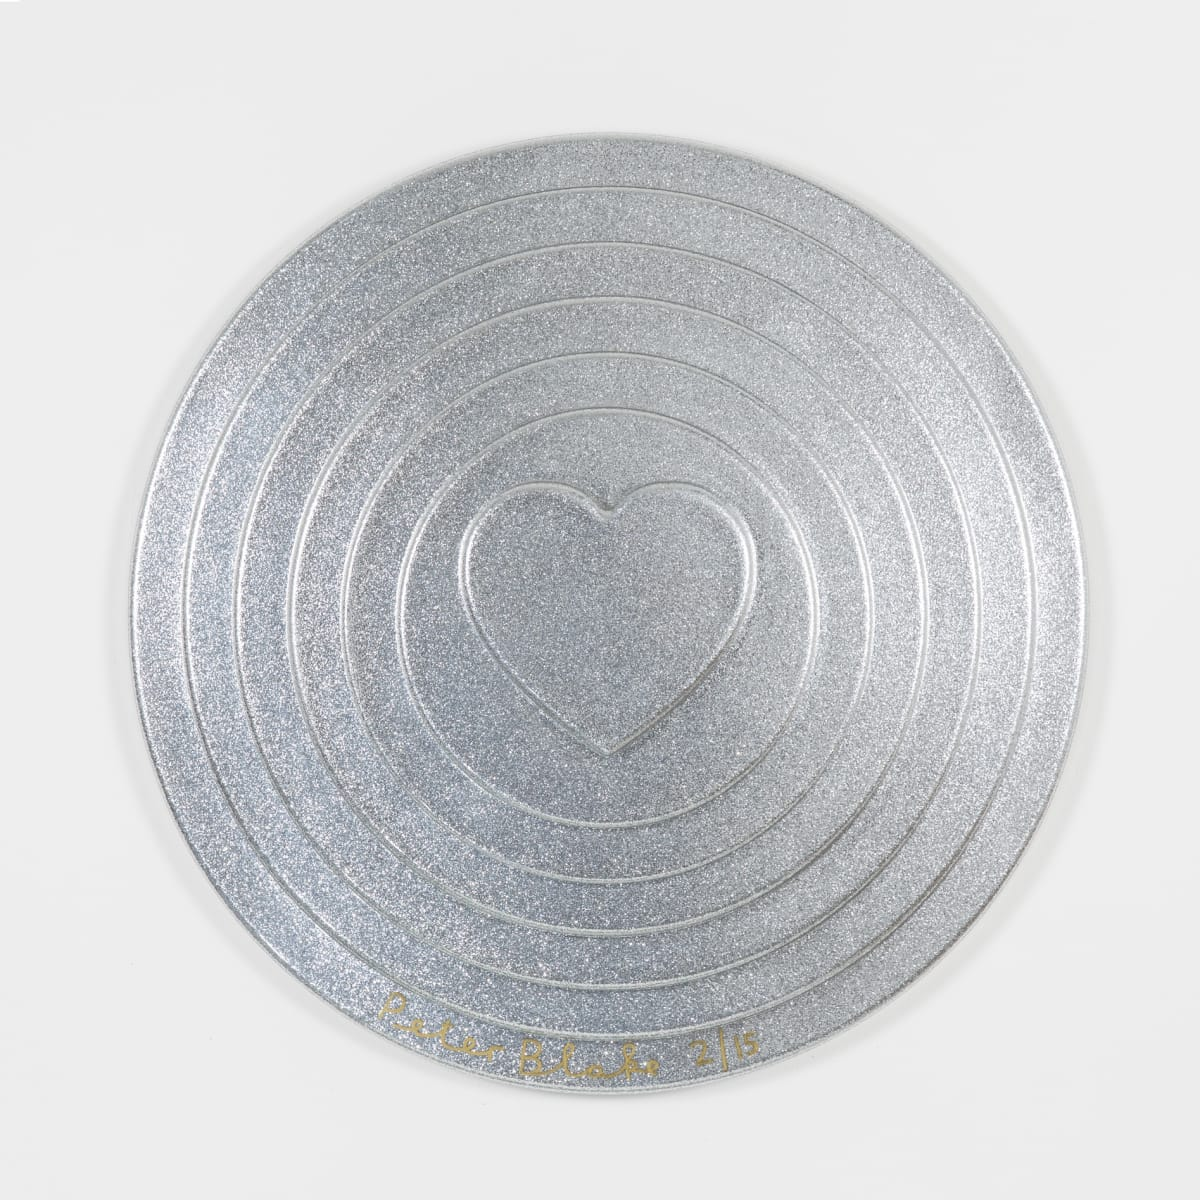 Peter Blake Silver Target (metal flake) , 2017 Vacuum formed plastic, paint 69 x 69 x 10 cm Edition of 15 Signed and numbered